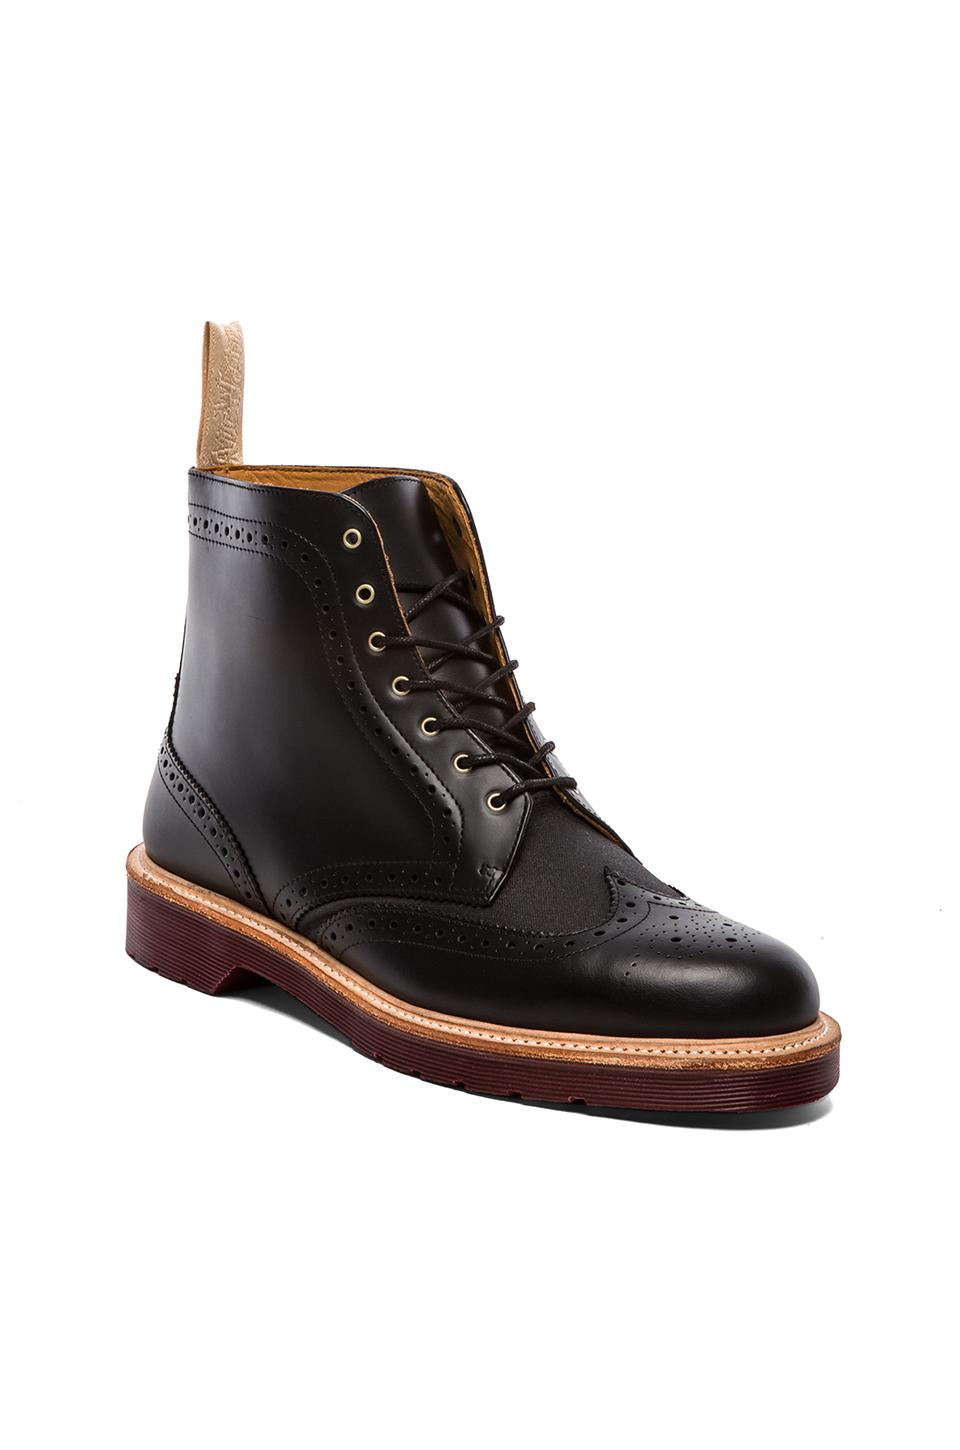 Dr. Martens Bentley Brogue Boot in Black | REVOLVE